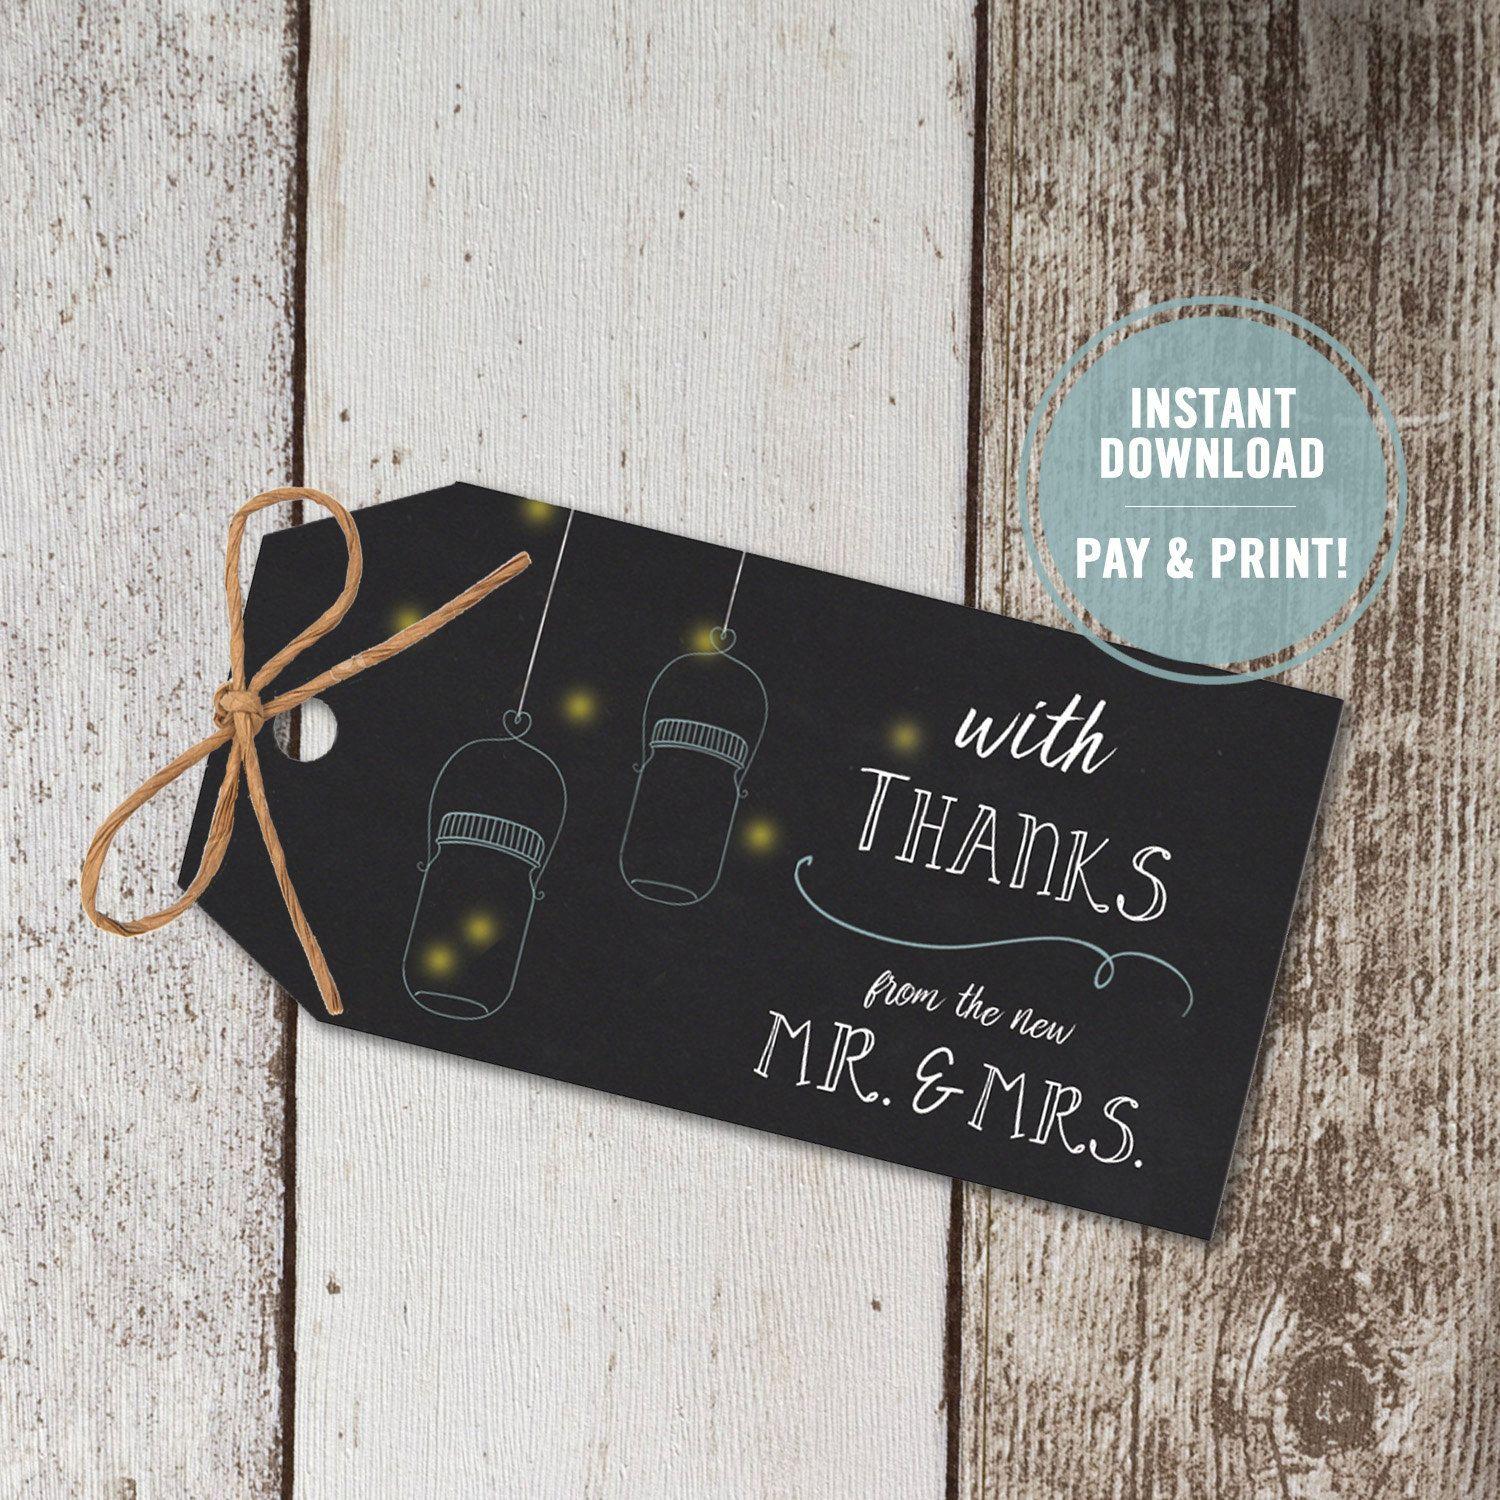 Wedding Favor Tags Printable, Chalkboard Thank You Tags, Party Favor Tags, Bridal Thank You Tags, Wedding Favor Tags, Instant Download Tags by ShadesOfGrace1 on Etsy